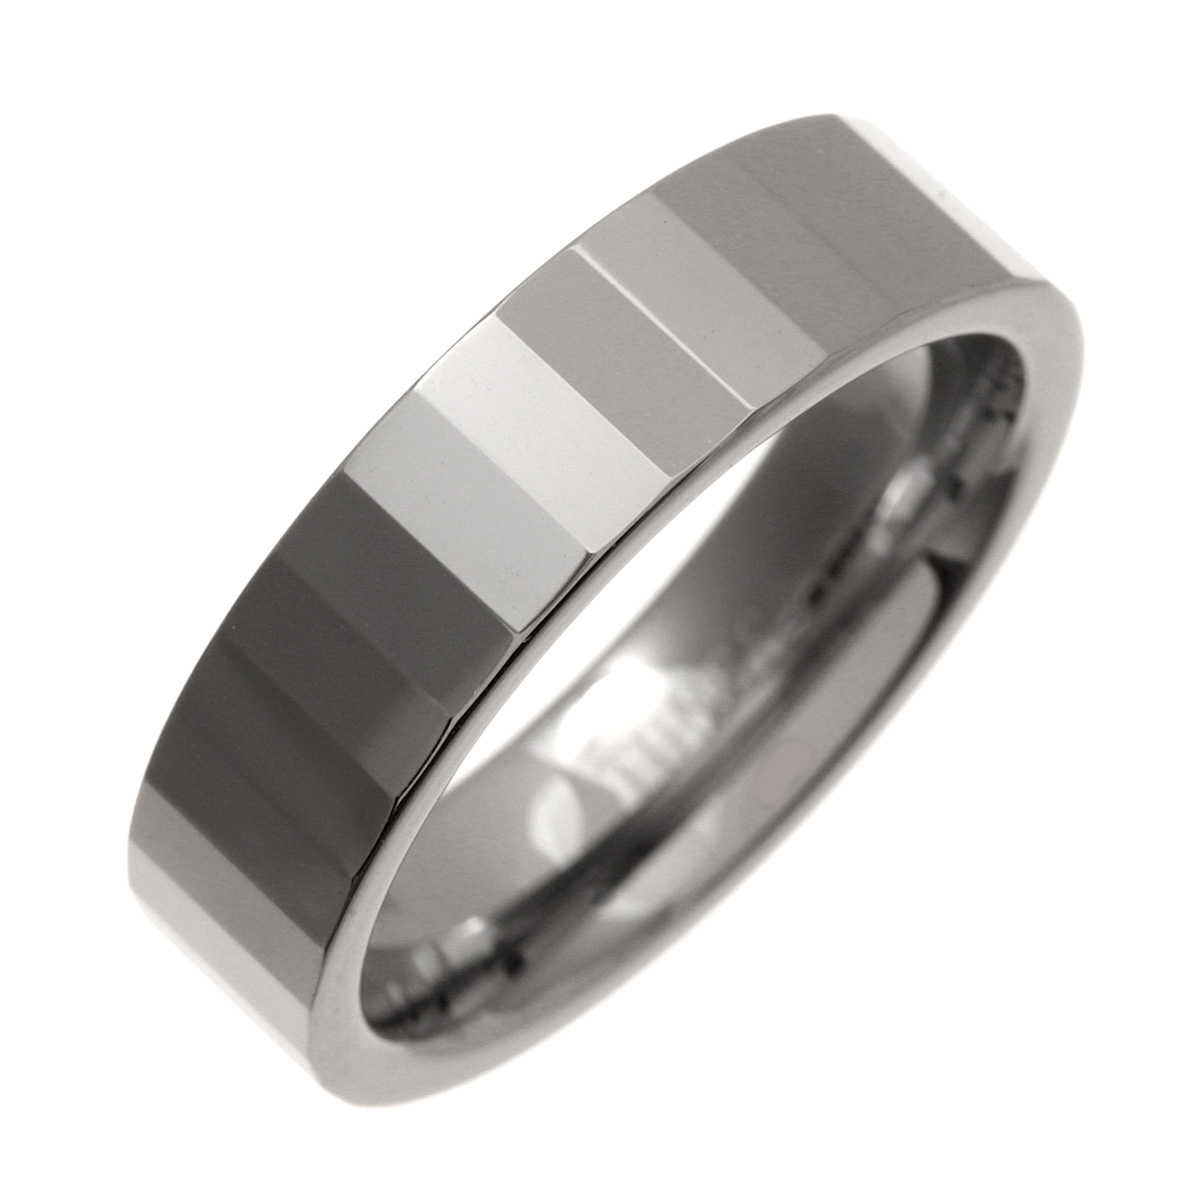 ring gold white real rings nickel wedding product silver classic top plated free male steel women men titanium